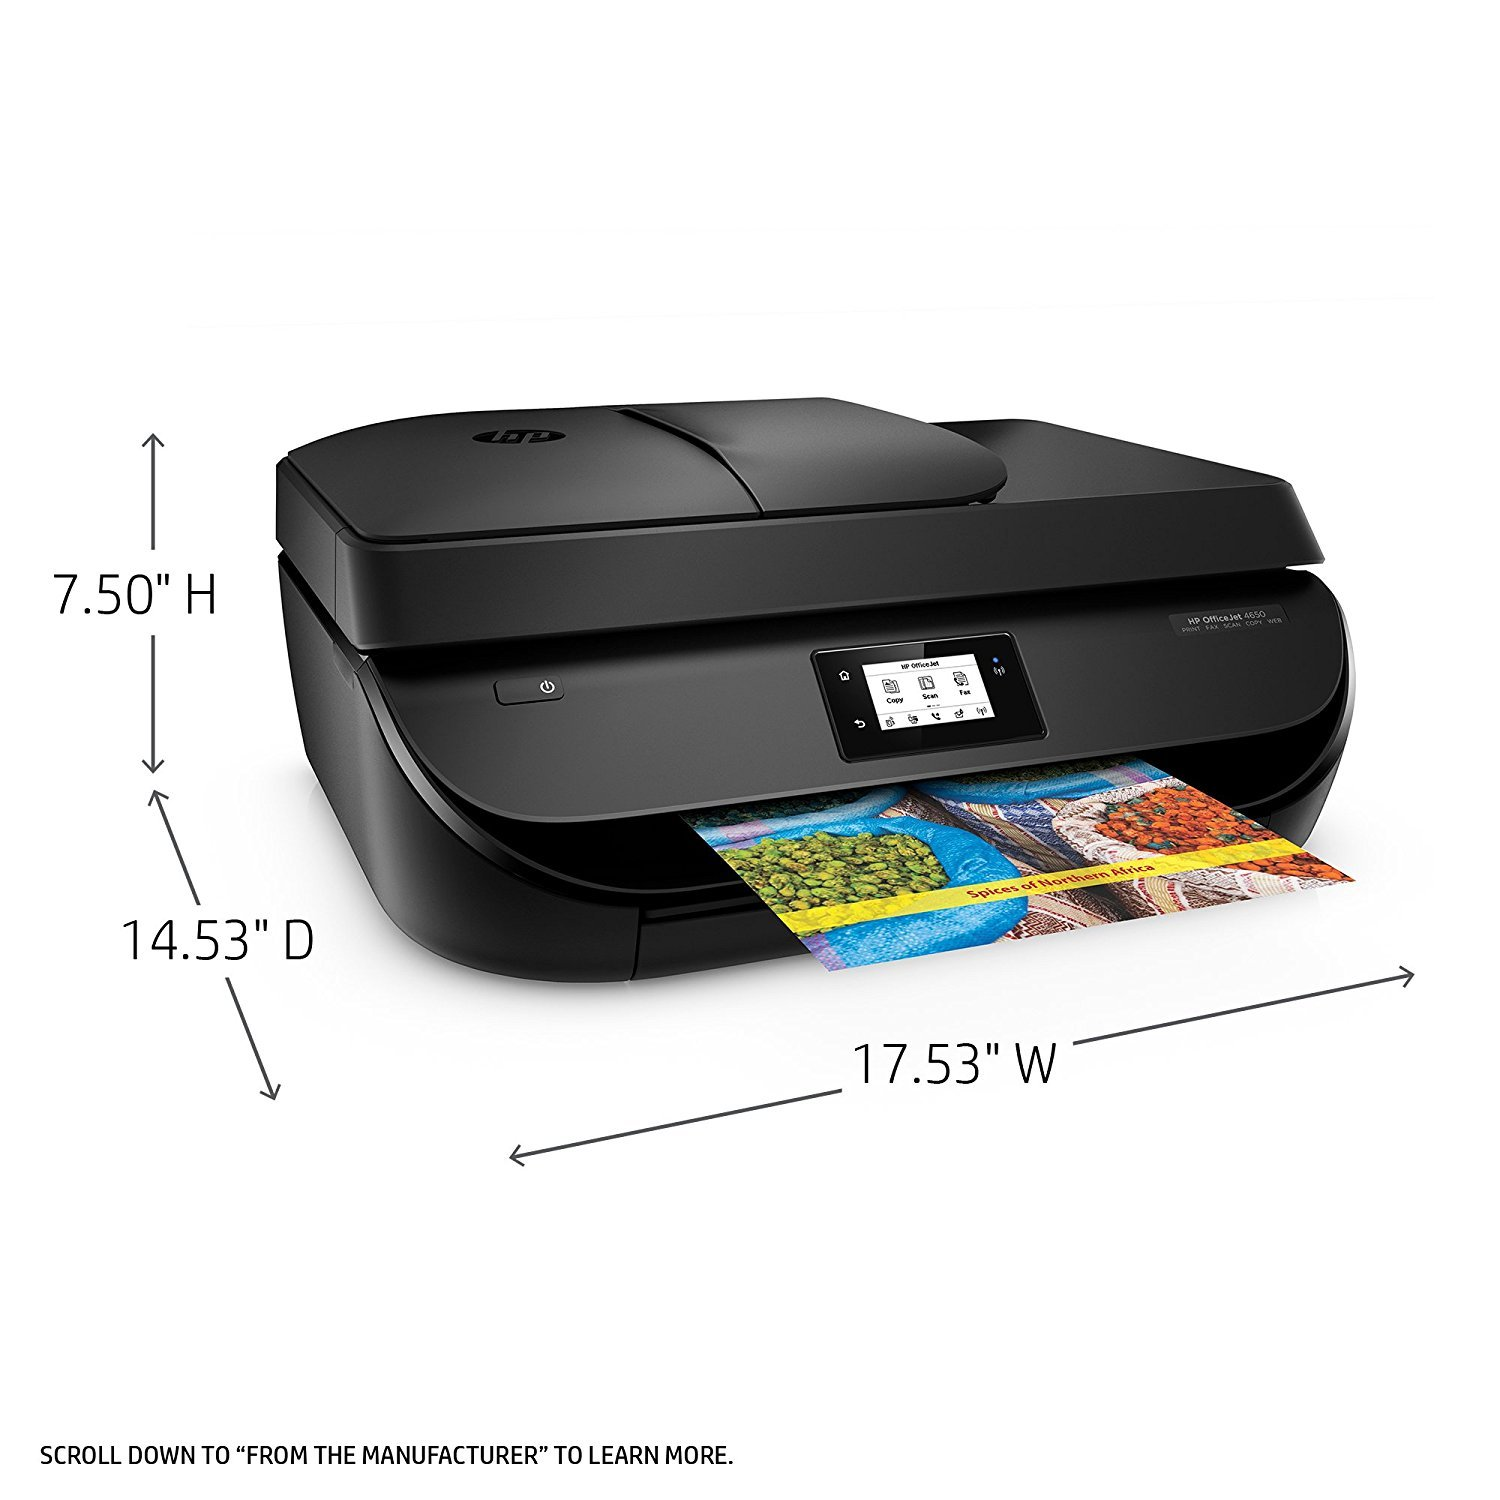 HP OfficeJet 4650 Wireless All-in-One Photo Printer, Copier and Scanner - Black (Certified Refurbished) by HP (Image #3)